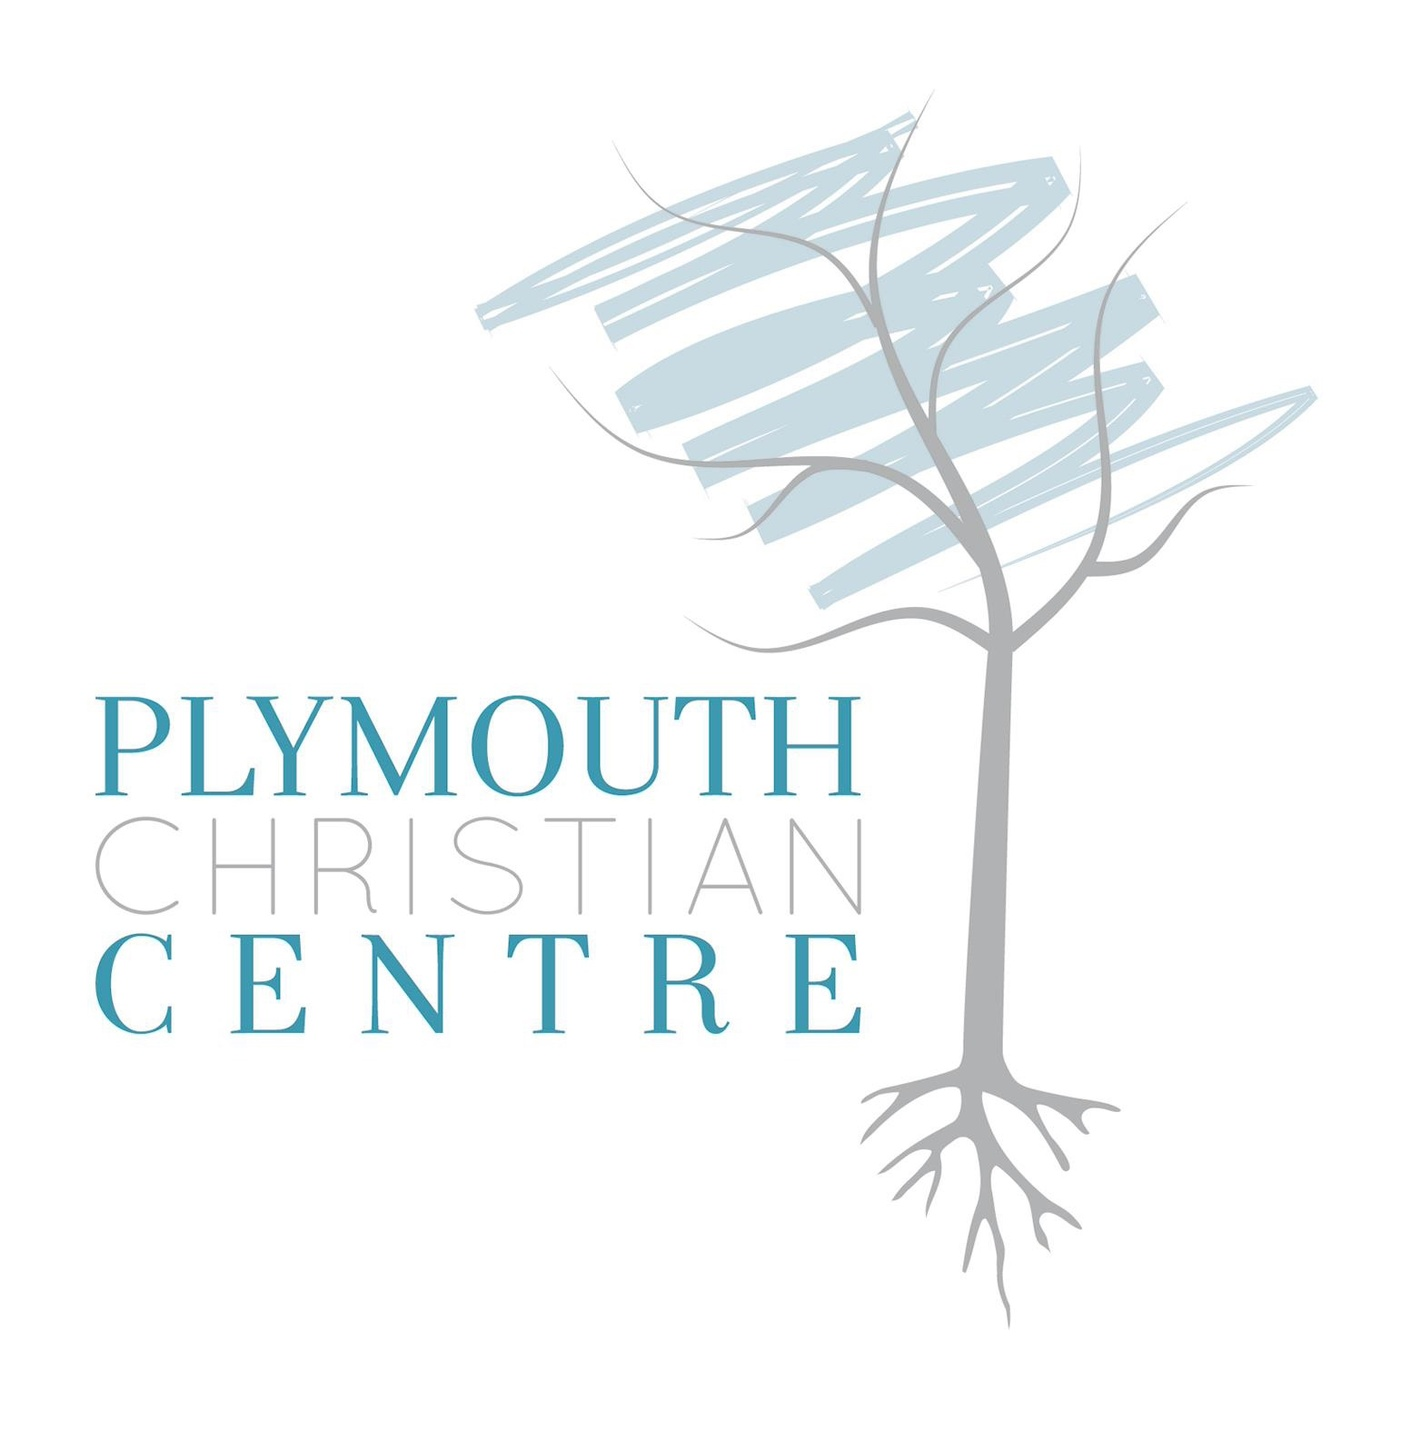 Plymouth Christian Centre